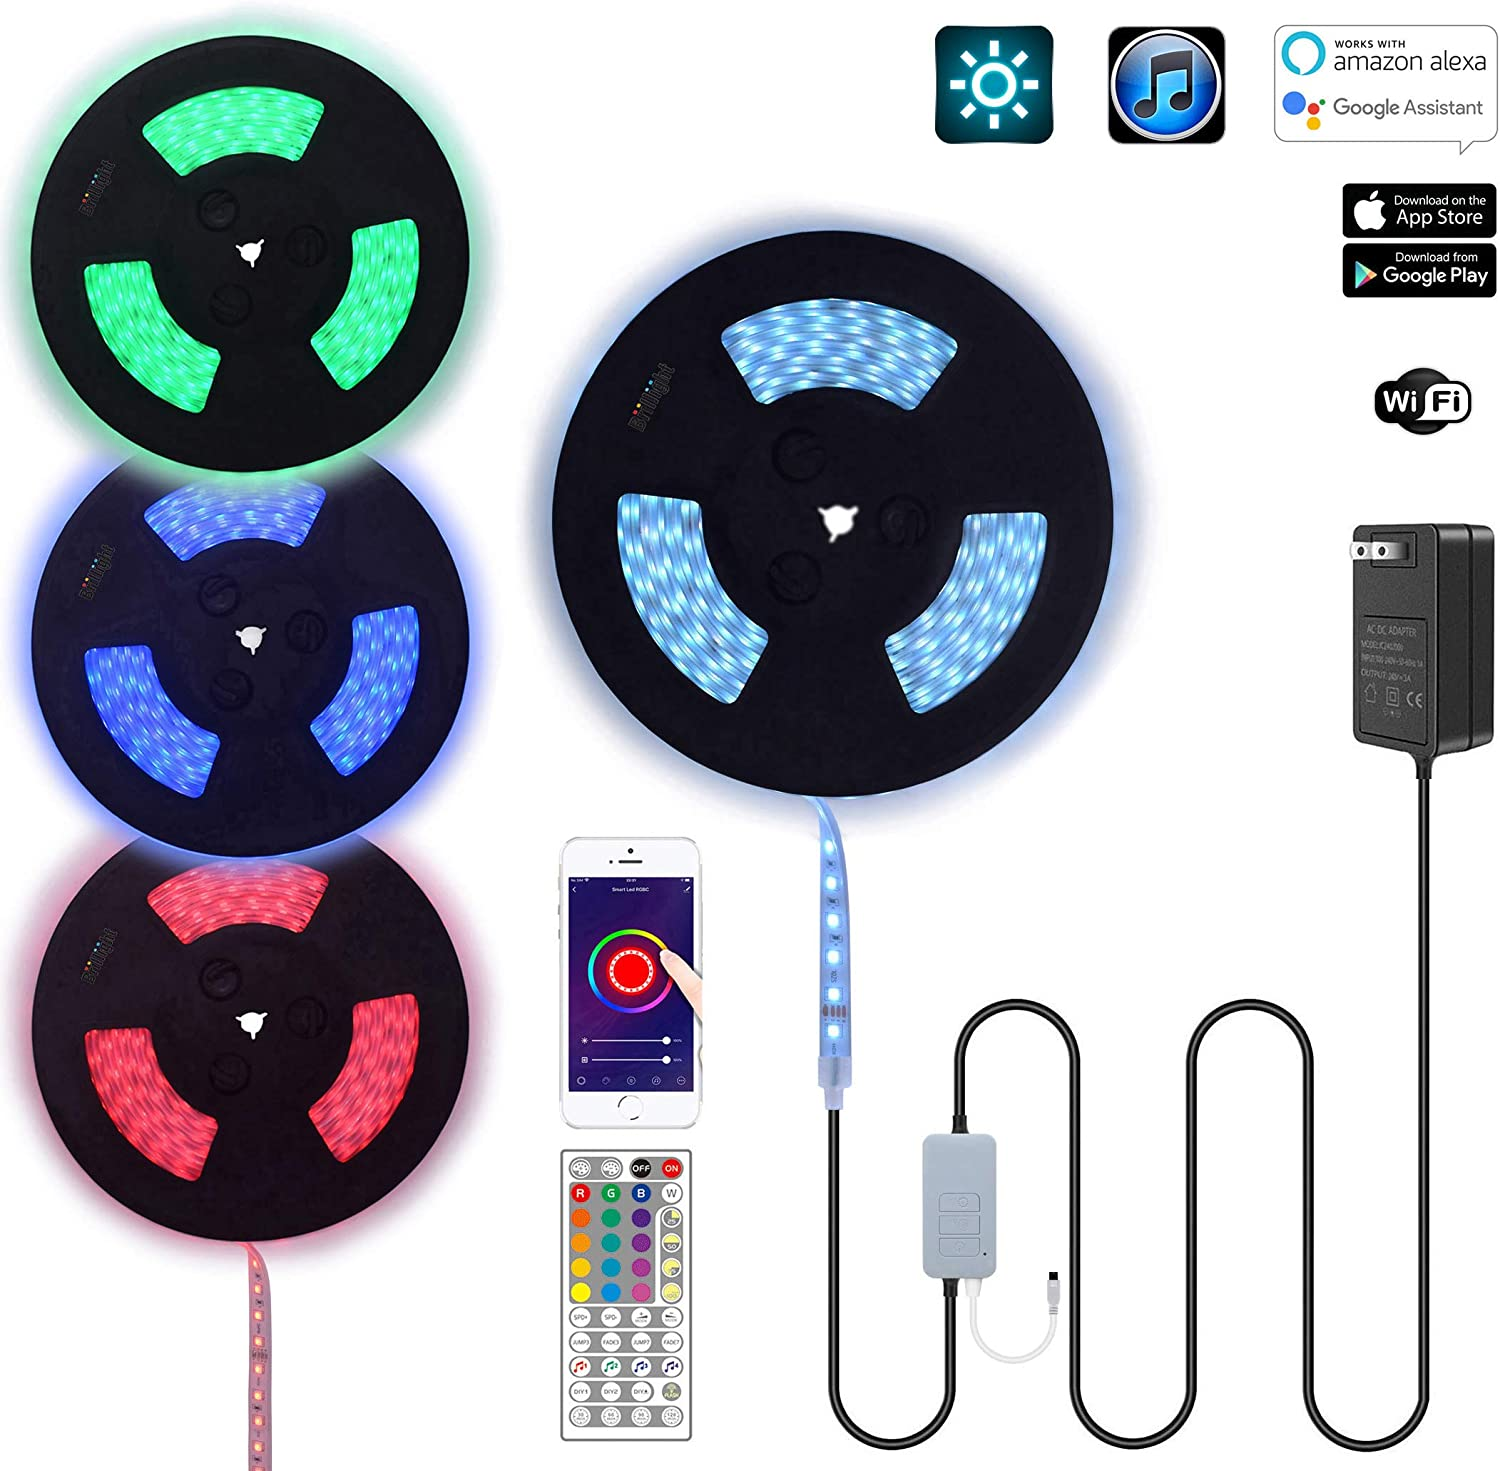 100Ft 24V Waterproof Long Run RGB LED Strip Rope Light Kit WiFi Tuya App Music SYNC Controller Works with Alexa Home Theater Crown Molding Backlight Outdoor Railings Decks Patio Garden Colors Lights